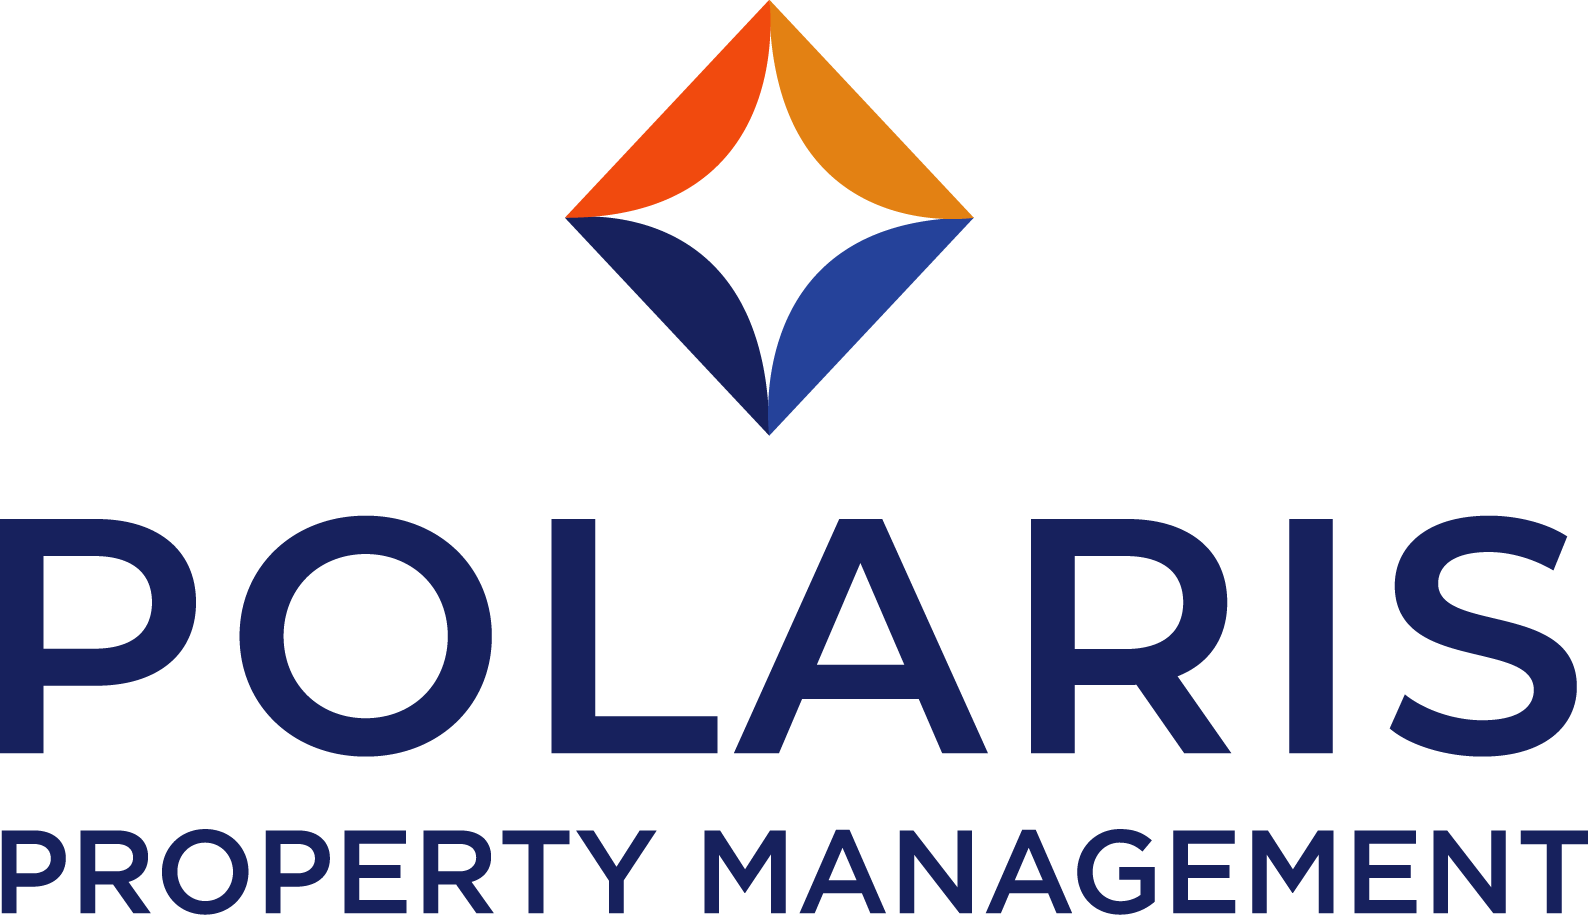 Polaris Property Management, LLC is the Go-to Indianapolis Property Management Company